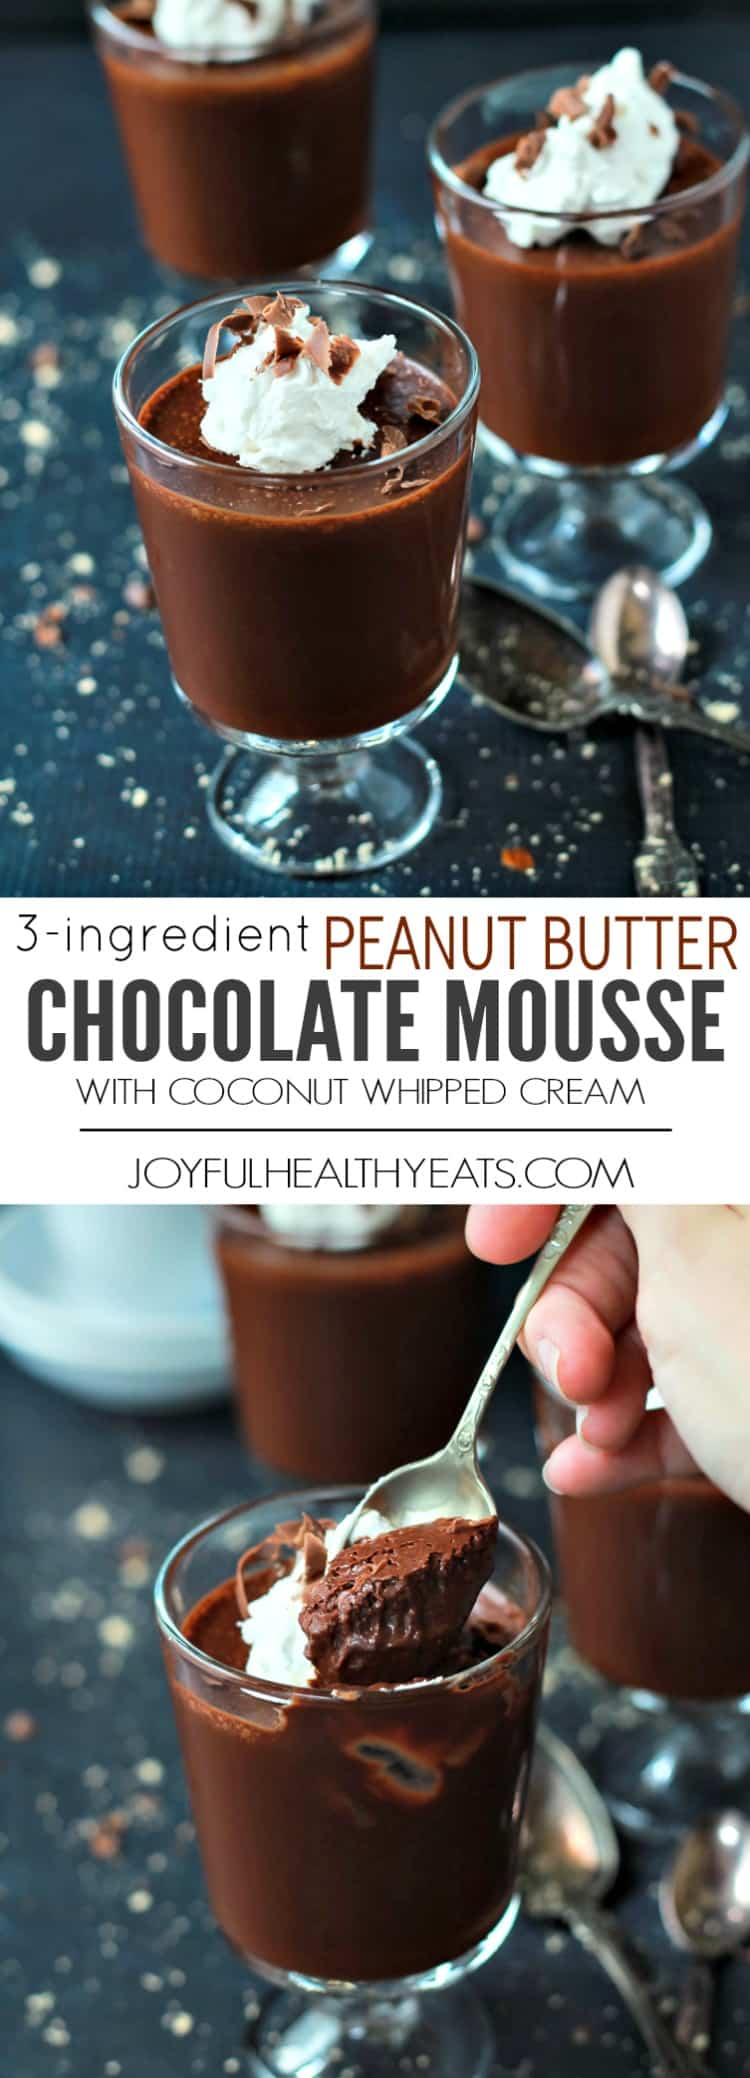 Four Cups of Peanut Butter Chocolate Mousse with Coconut Whipped